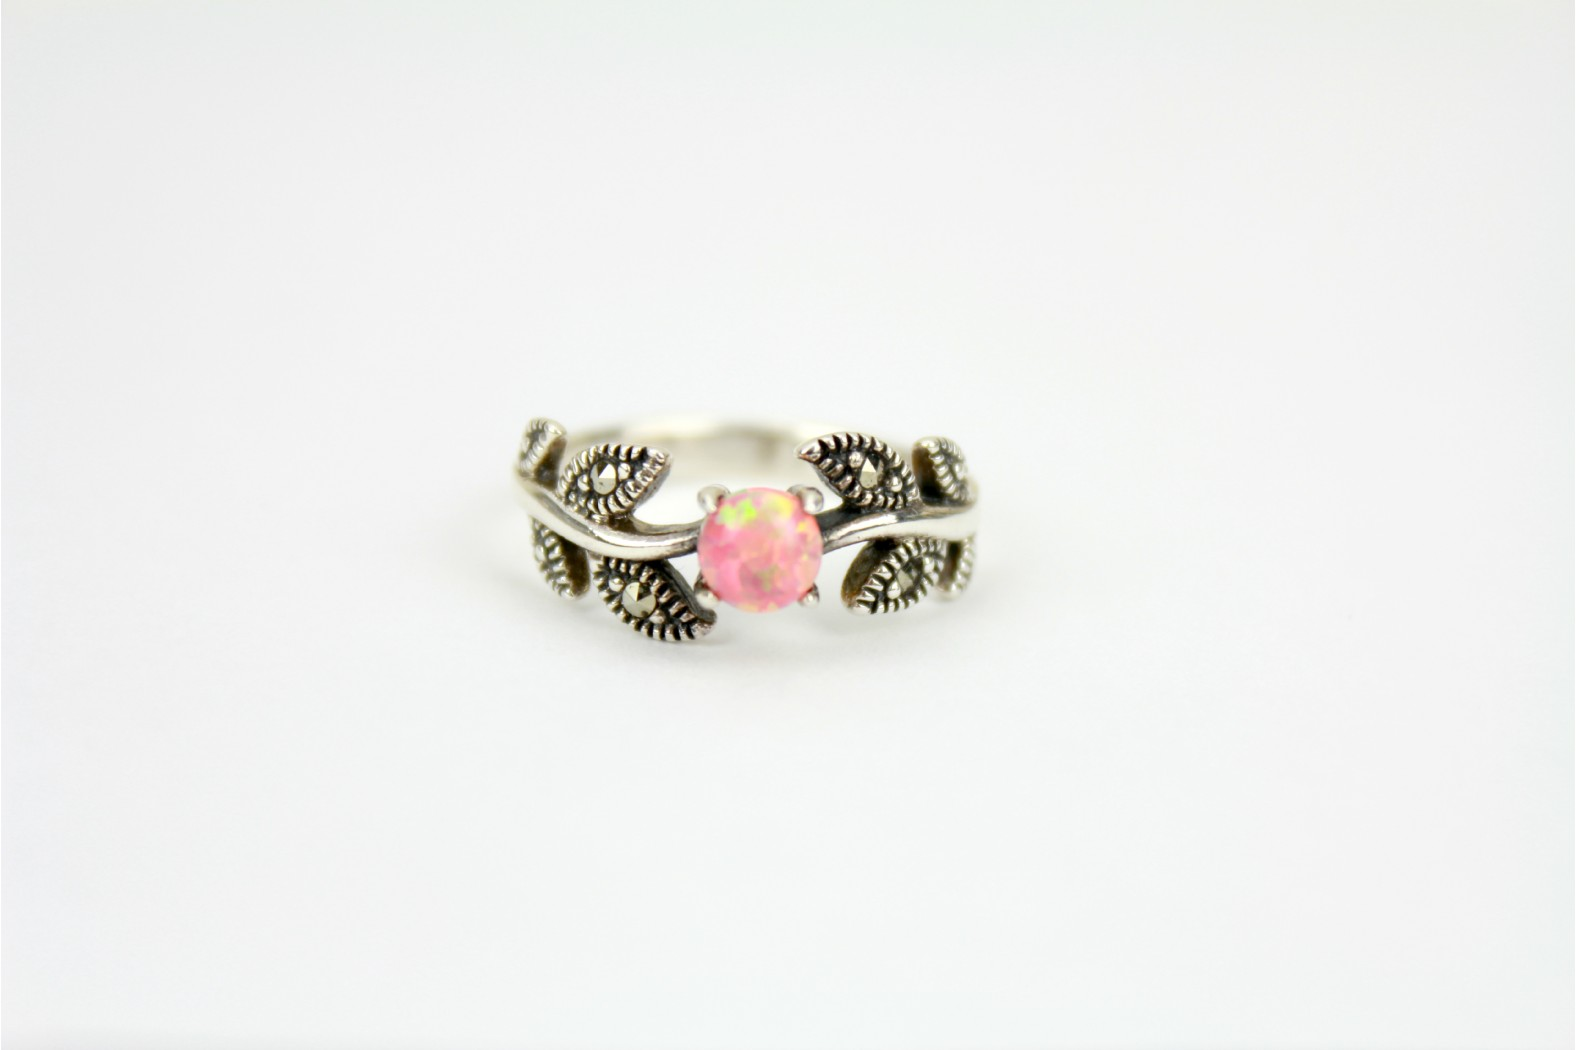 Stunning creation Coral Pink Opal Fire with Marcasite stones set on vine leaf style detailing size 7 or N